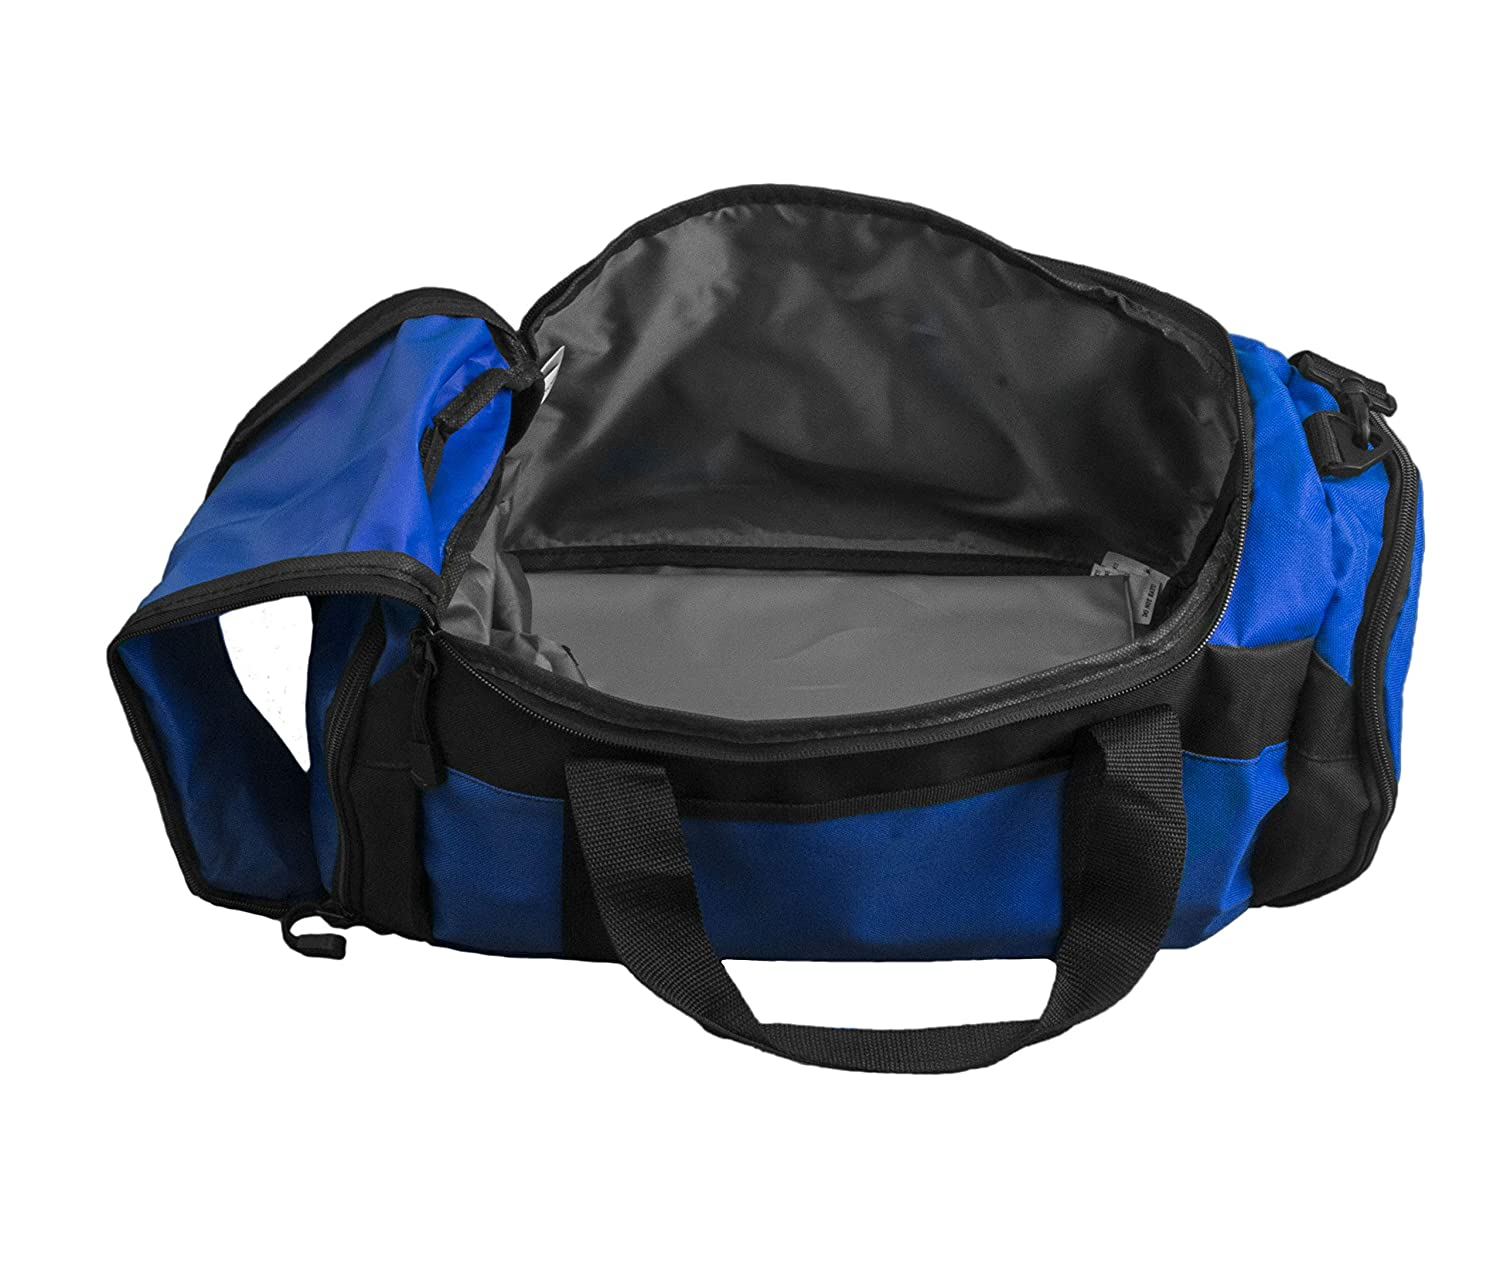 aefdd2069f5a all about me company Personalized Soccer Gym Sports Duffel Bag (Black)